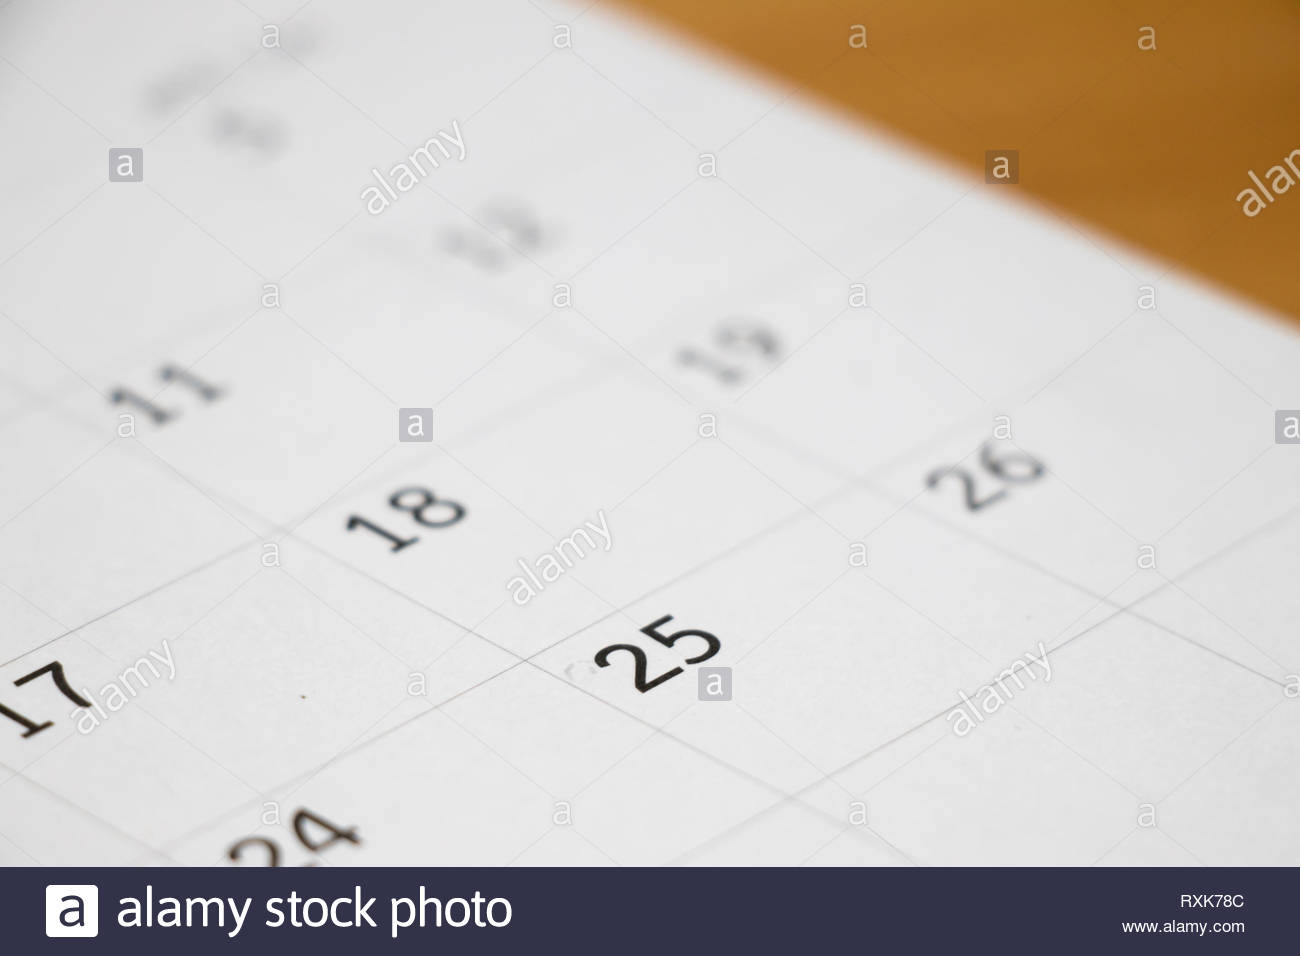 Closed up of day 25 on calendar background Stock Photo 240138652 1300x956